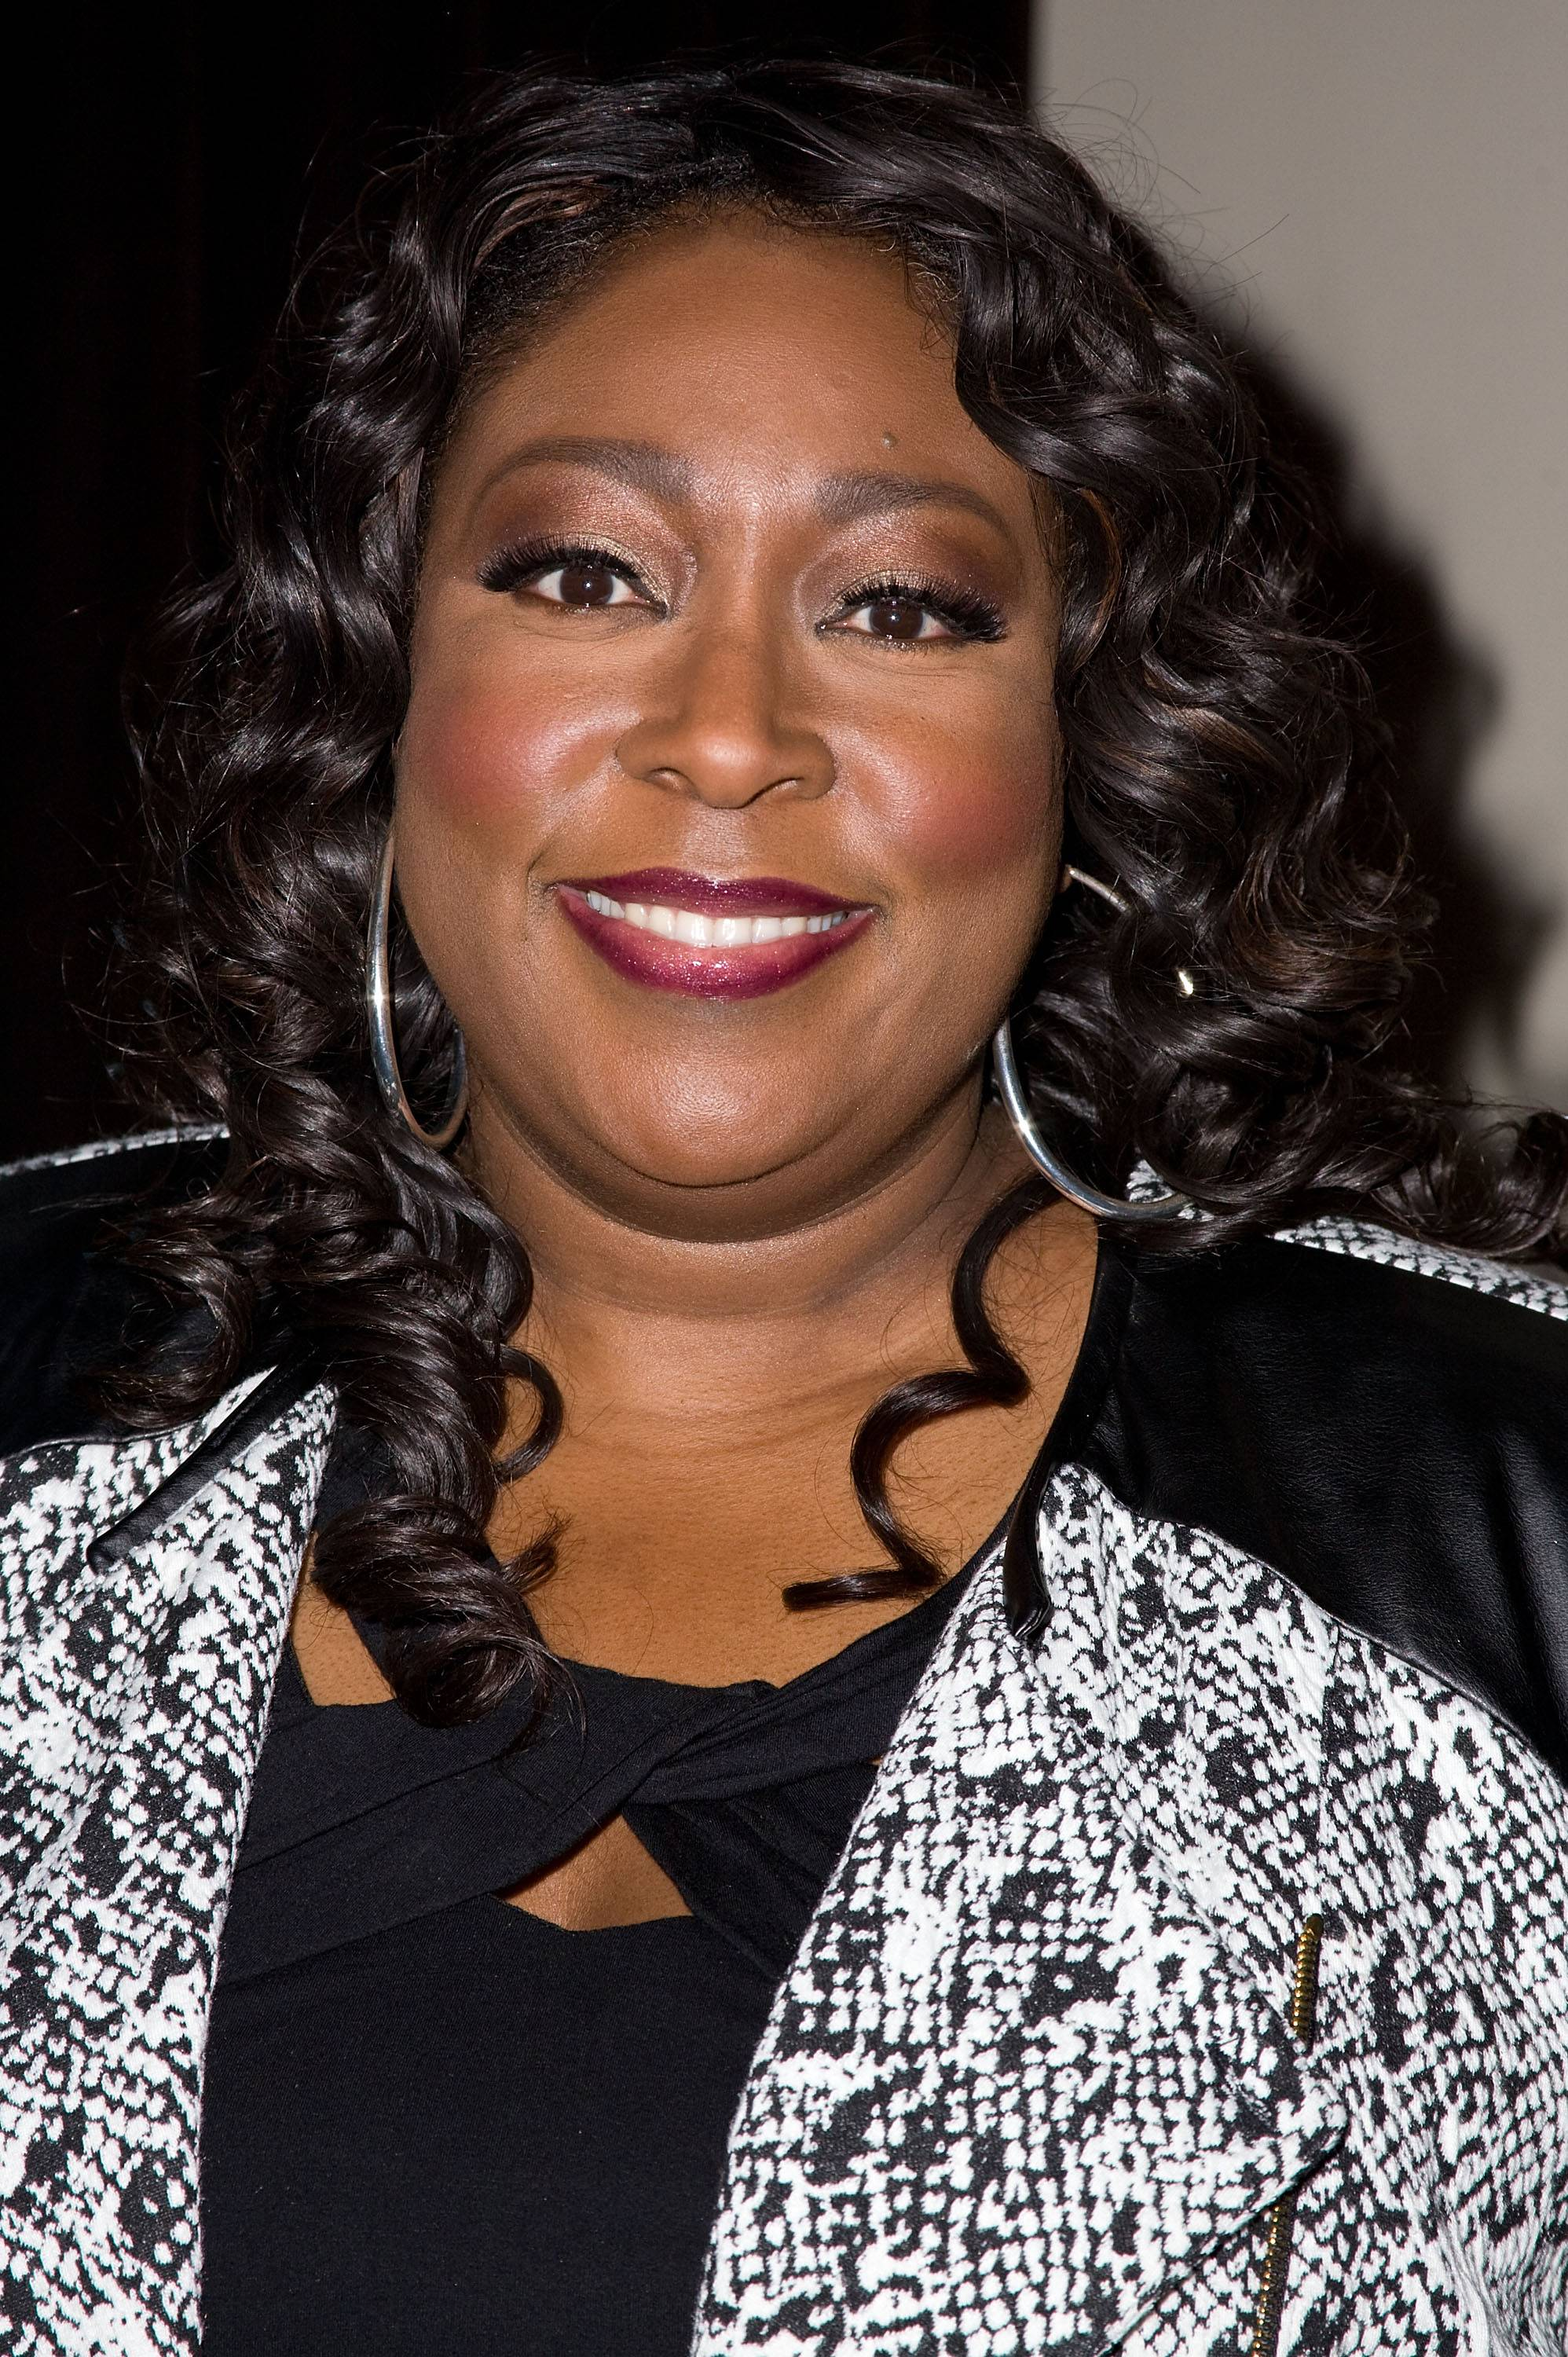 The Love Doctor - When it comes to relationships, Loni Love has a few words of advice, but just because you're being real doesn't mean you have to be serious! Last year, the comedian added author to her long list of accomplishments when she published her book,Love Him or Leave Him But Don't Get Stuck With the Tab.(Photo: Vincent Sandoval/WireImage)